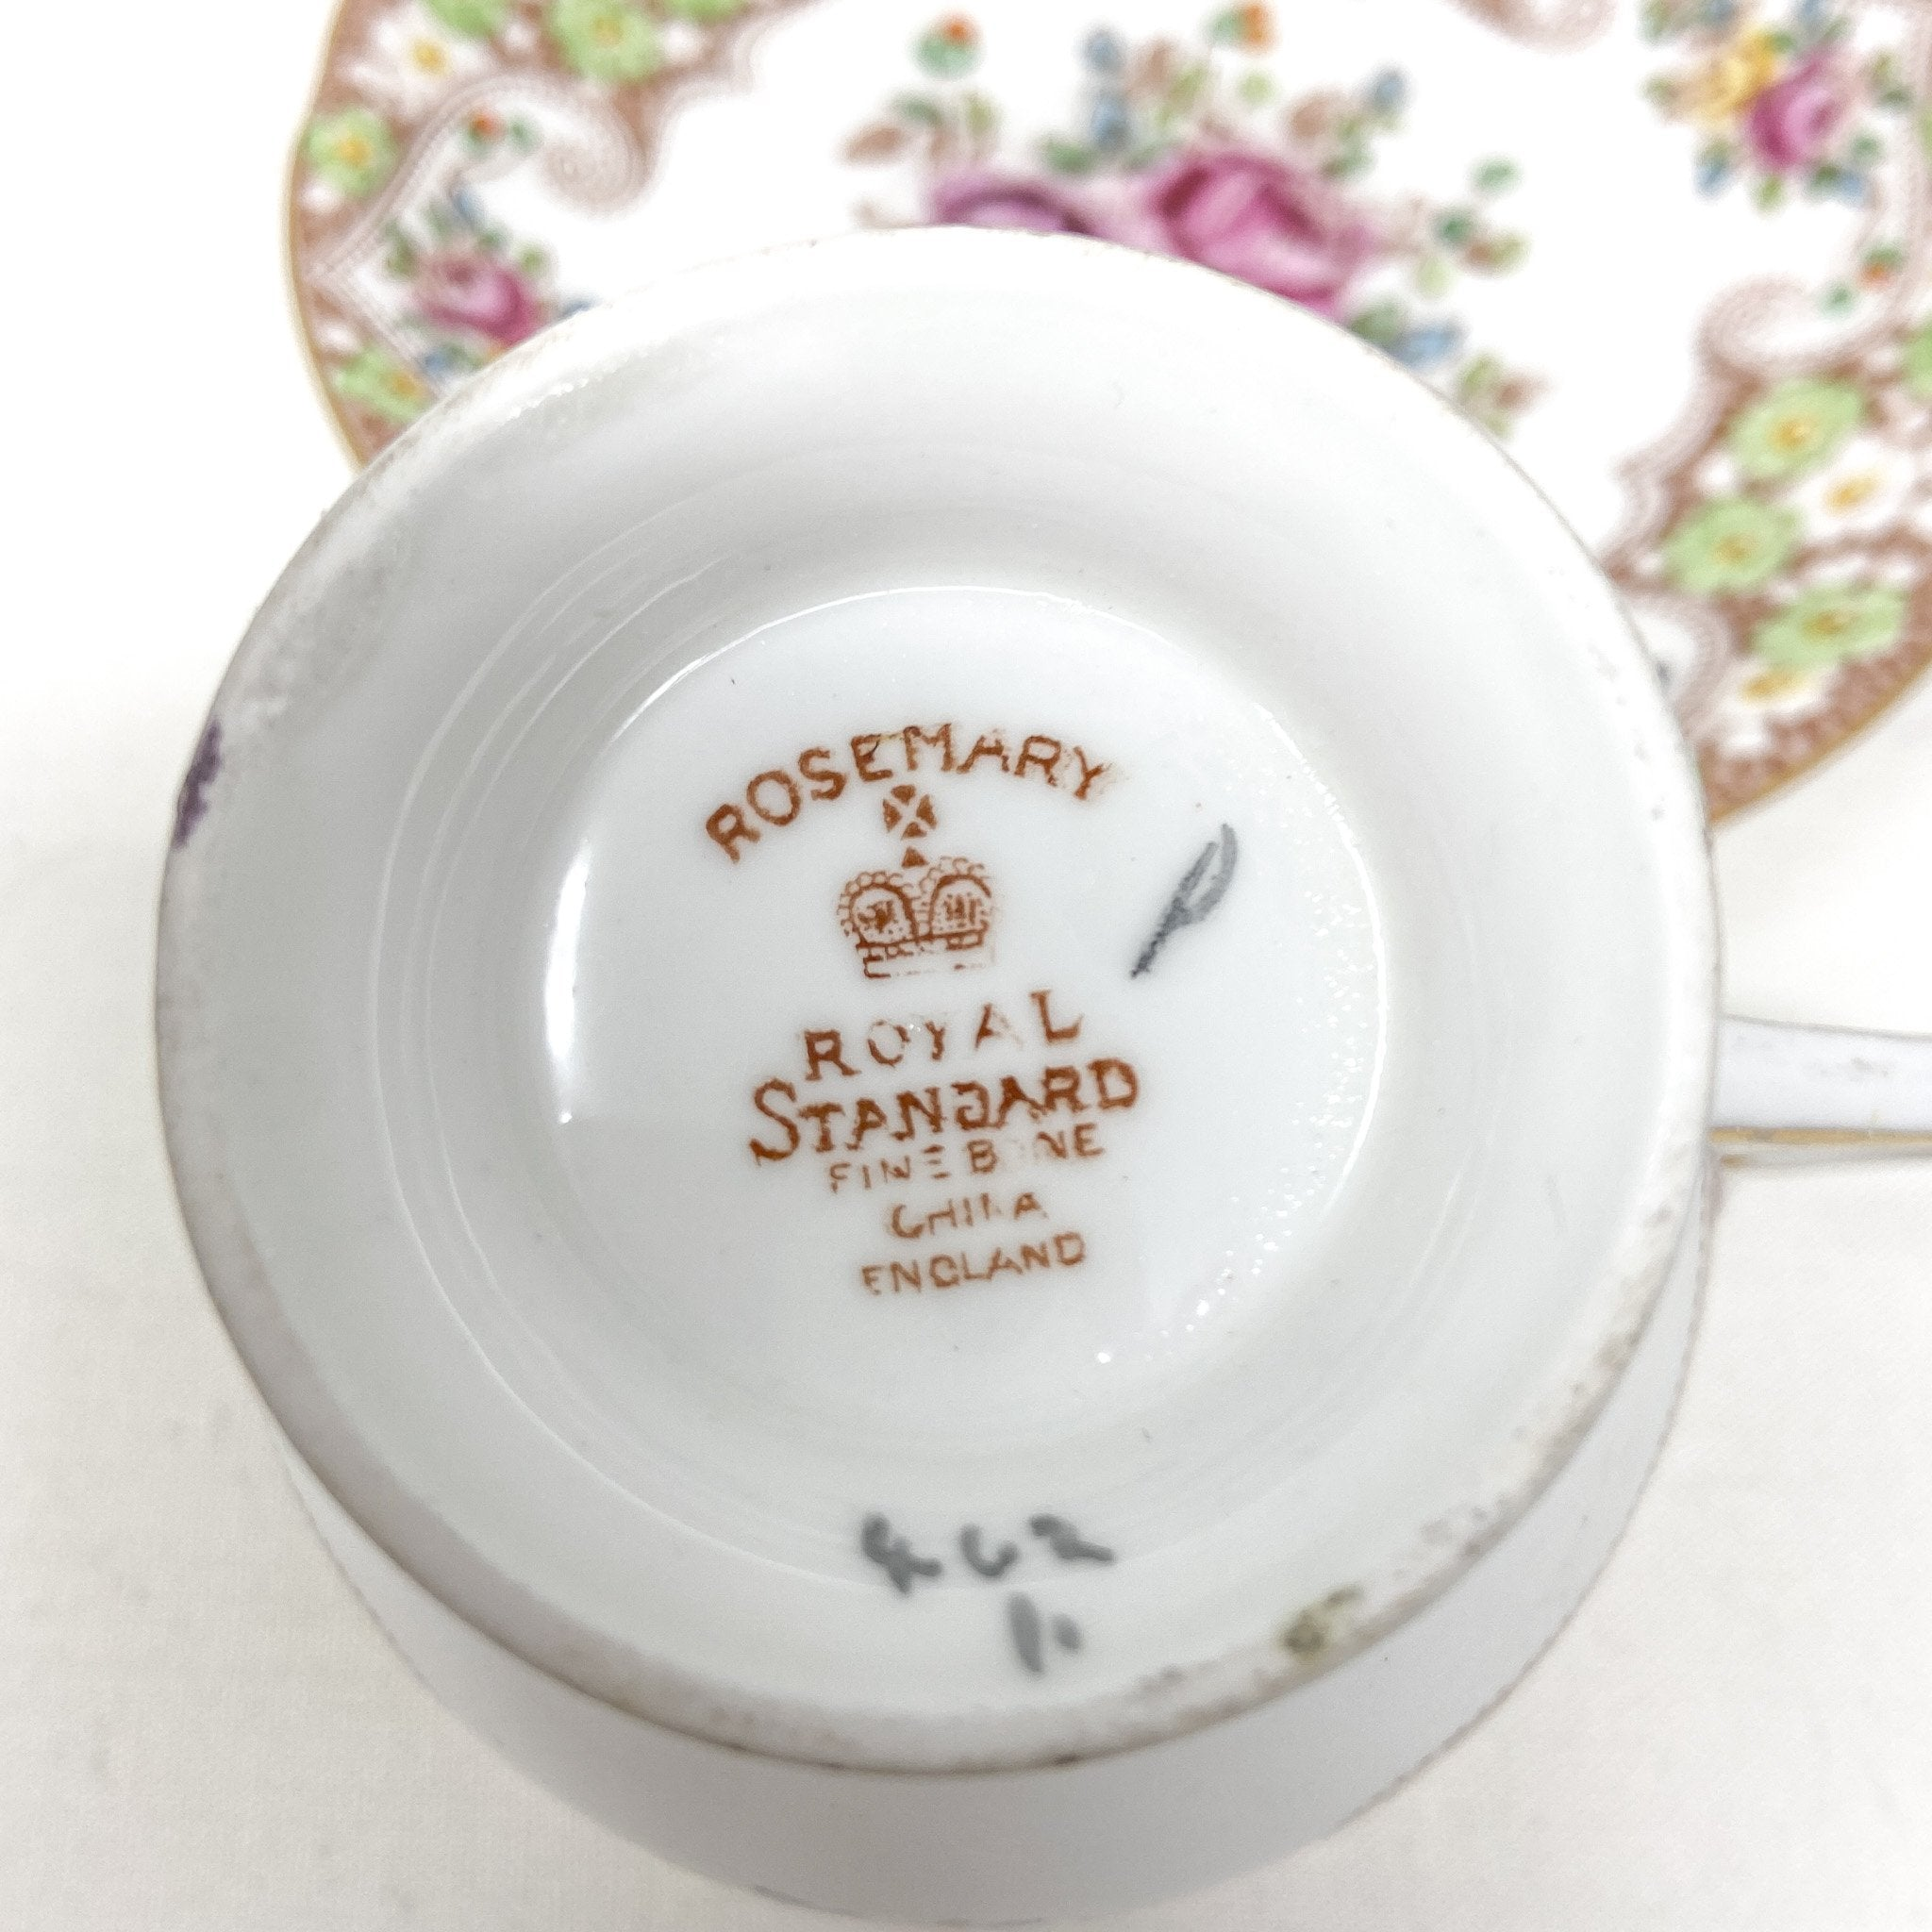 stamp of Royal Standard Rosemary | Teacup, Saucer & Strainer | The Brooklyn Teacup - reads Royal Standard, Rosemary, Fine Bone China, England